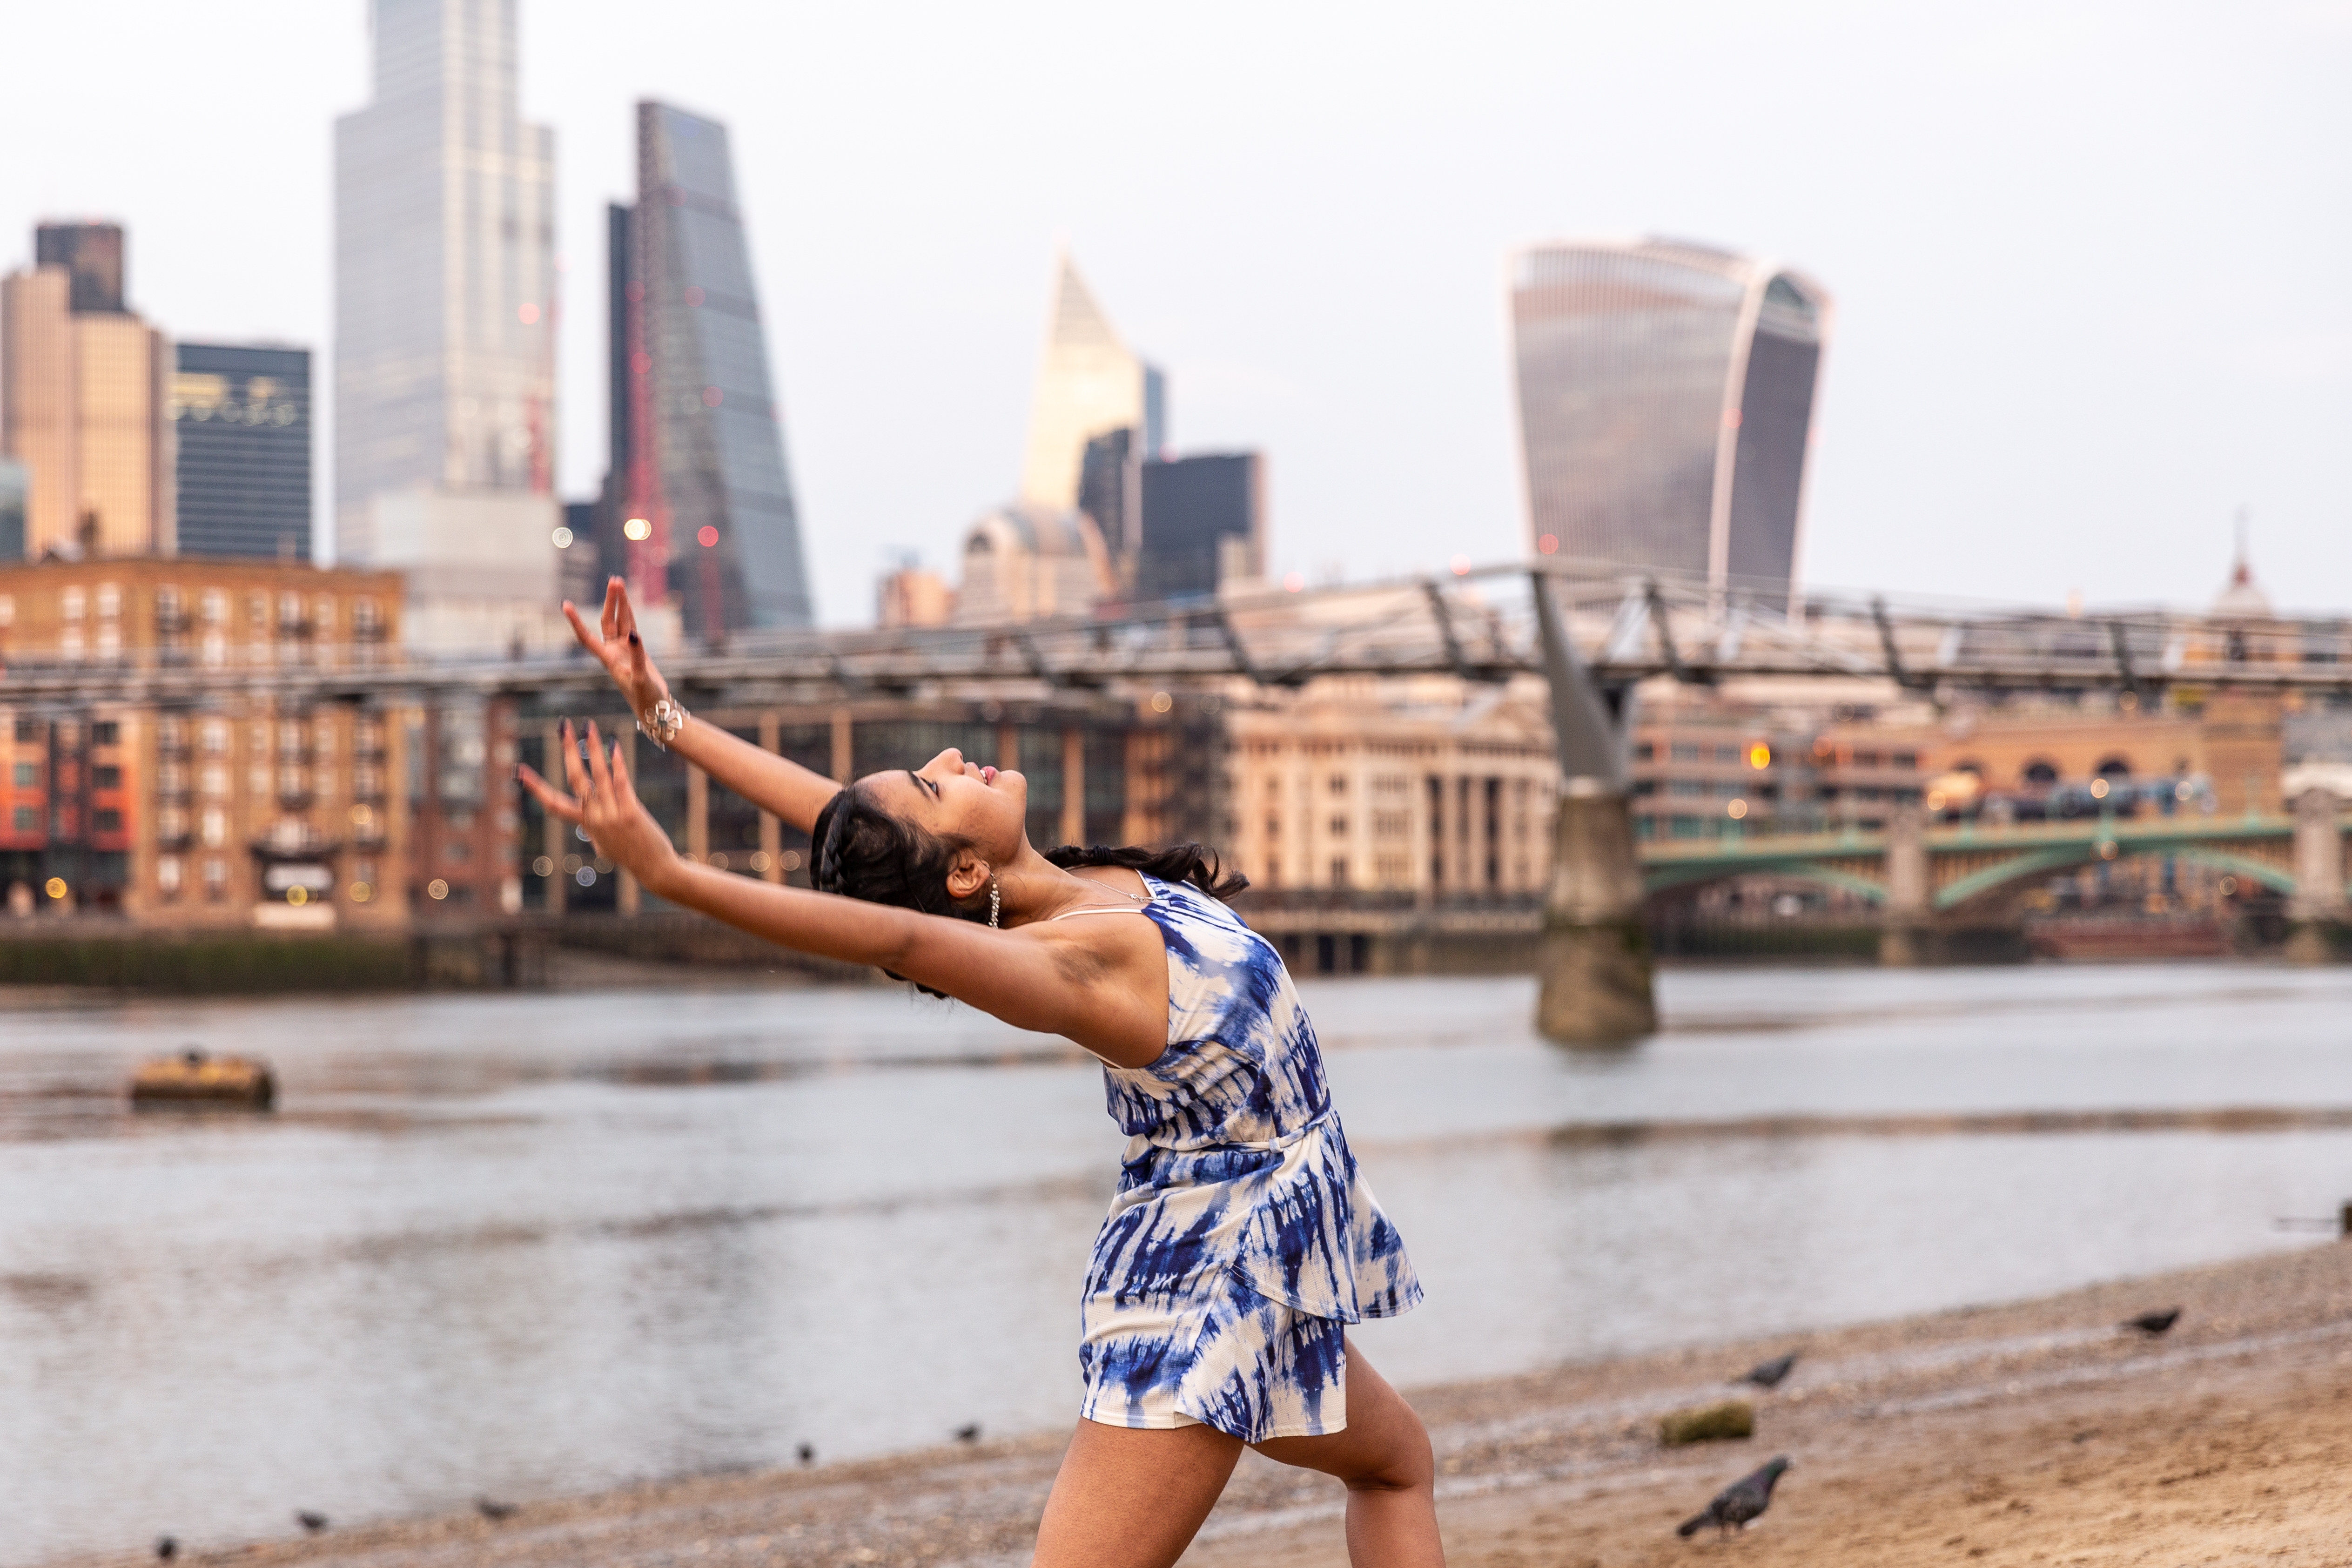 <p>London, England on March 8, 2021. Young woman practices dance routine on a sandy beach in Southbank by the Thames river while the setting sun covers The City of London, the financial hub of the UK during an ongoing�third Coronavirus lockdown. The Prime Minister Boris Johnson have set a road map on easing the restrictions. (Photo by Dominika Zarzycka/Sipa USA)</p>